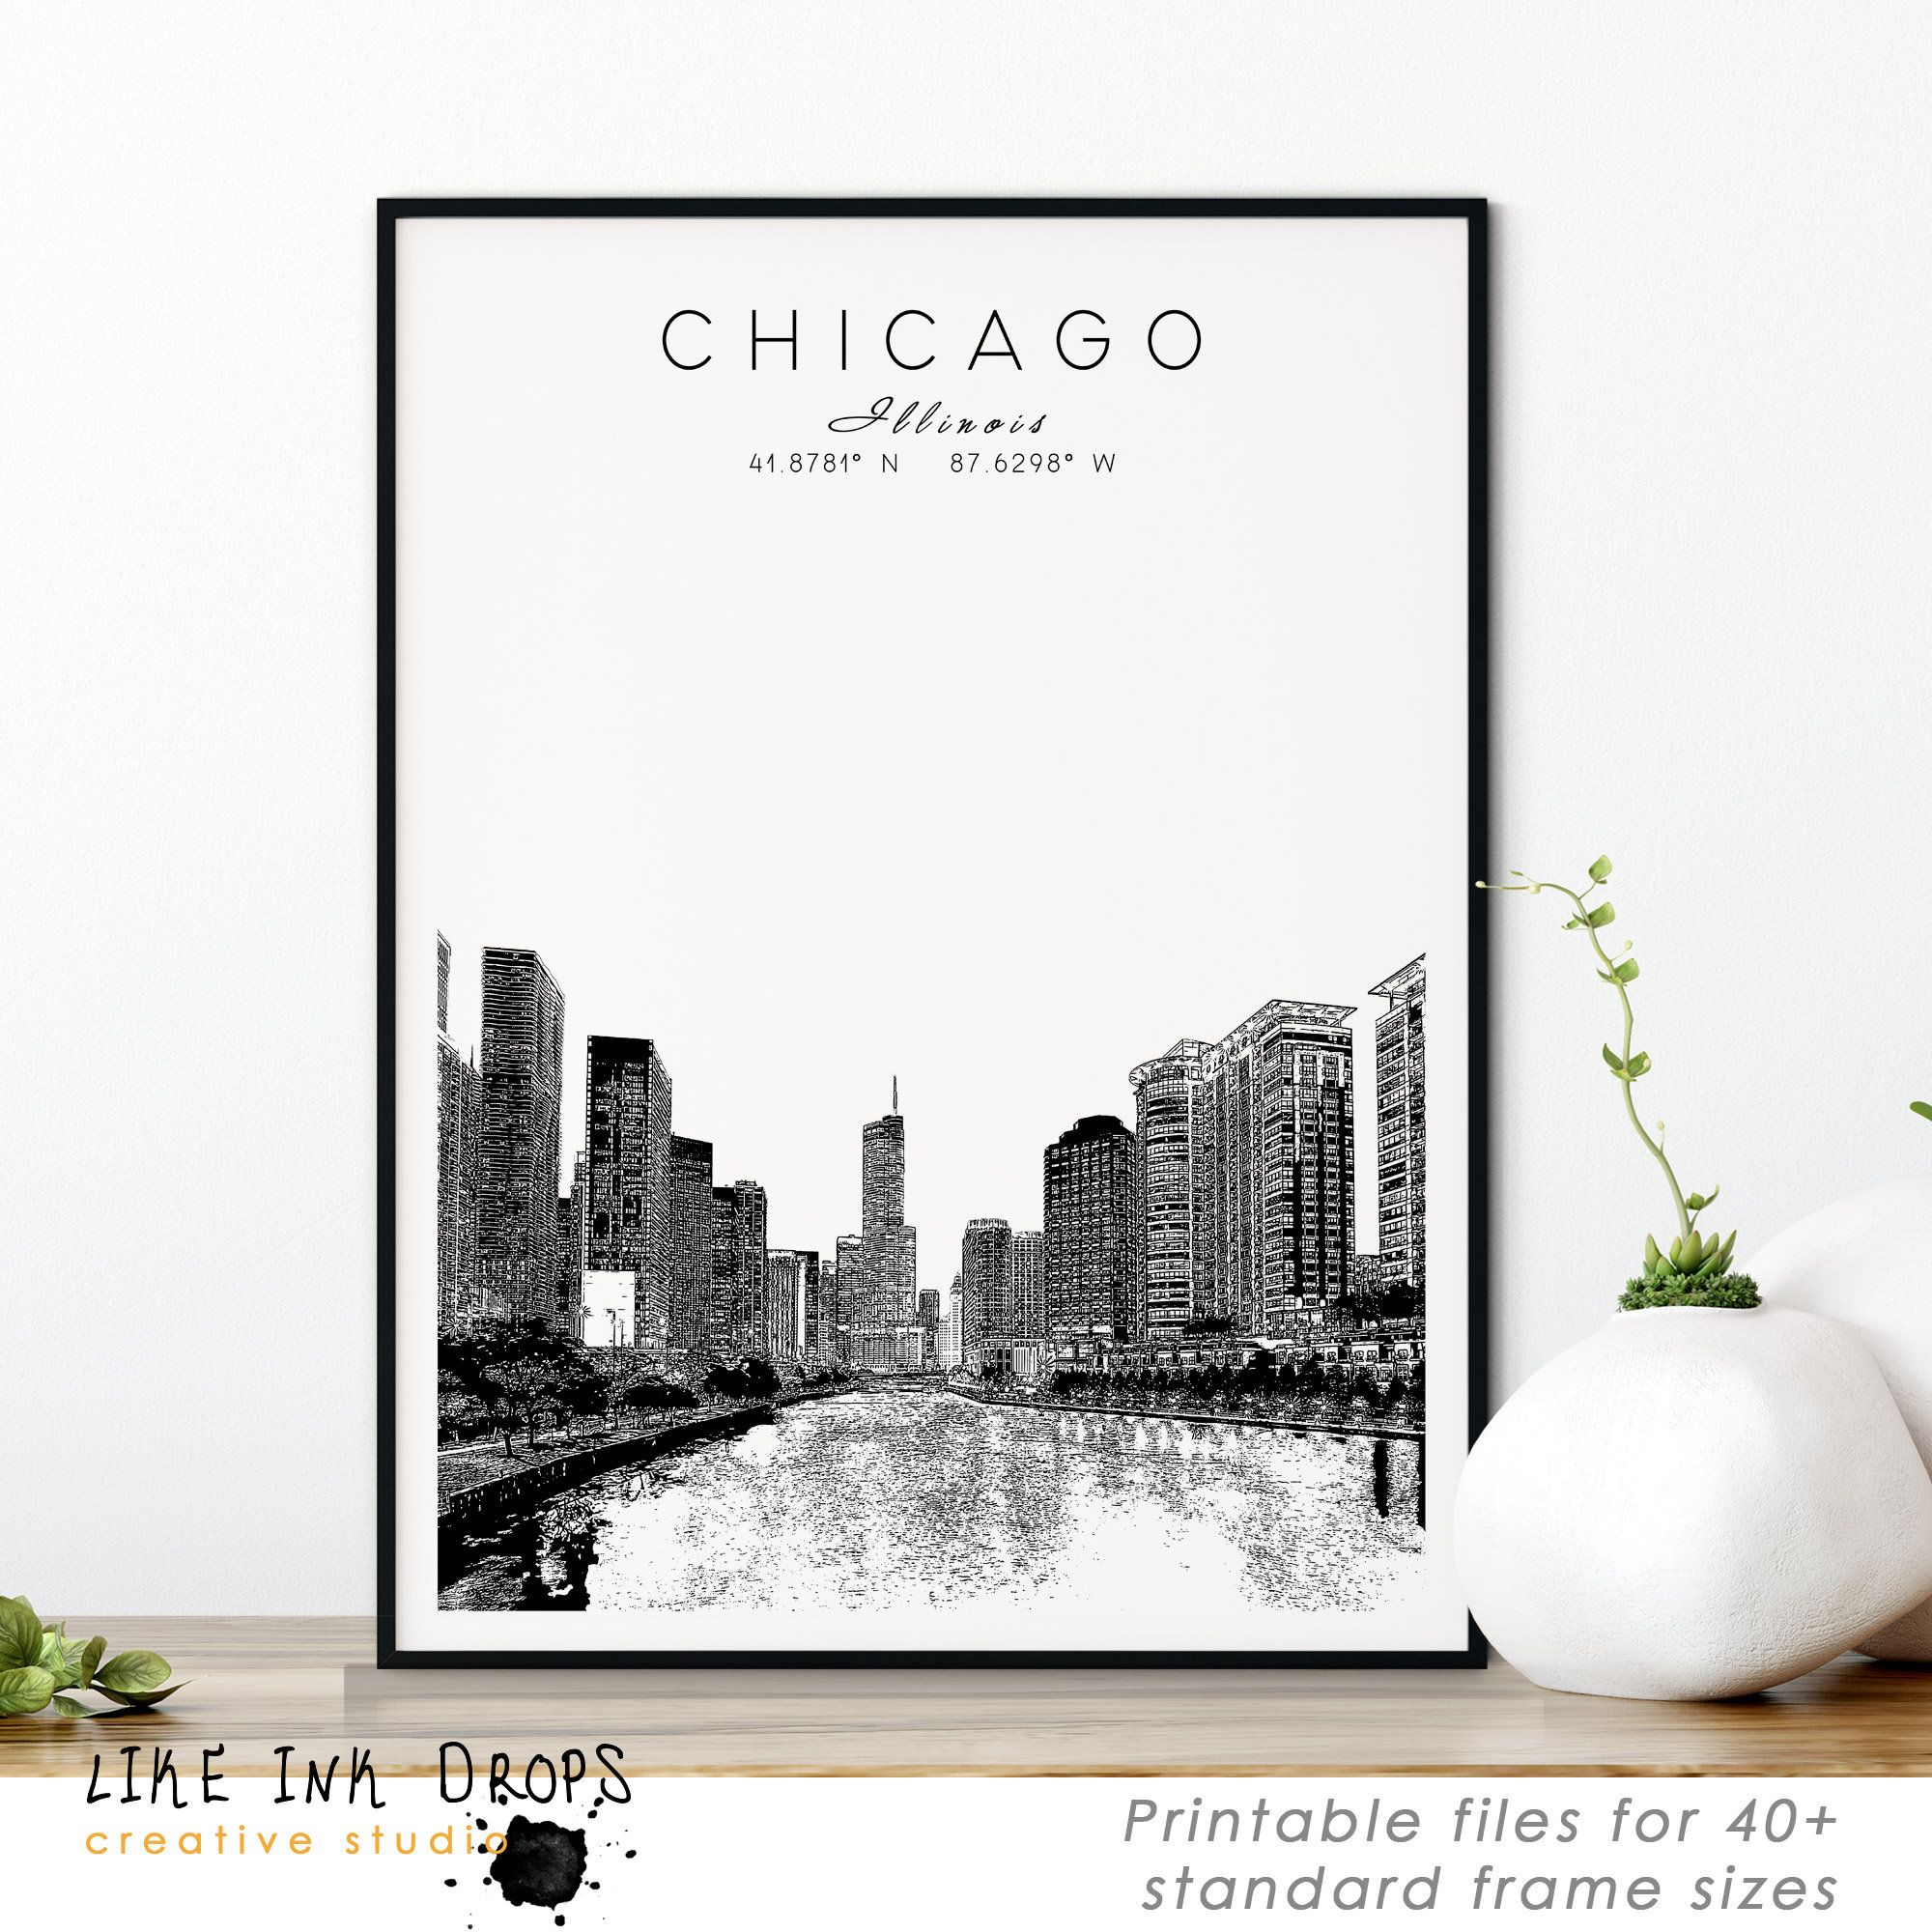 Minimalist Chicago Wall Art Decor Digital Printable Image Of Illinois Modern Download Art For Living Room Home Office Usa City Gift Chicago Wall Art Cactus Wall Art Chicago Wall